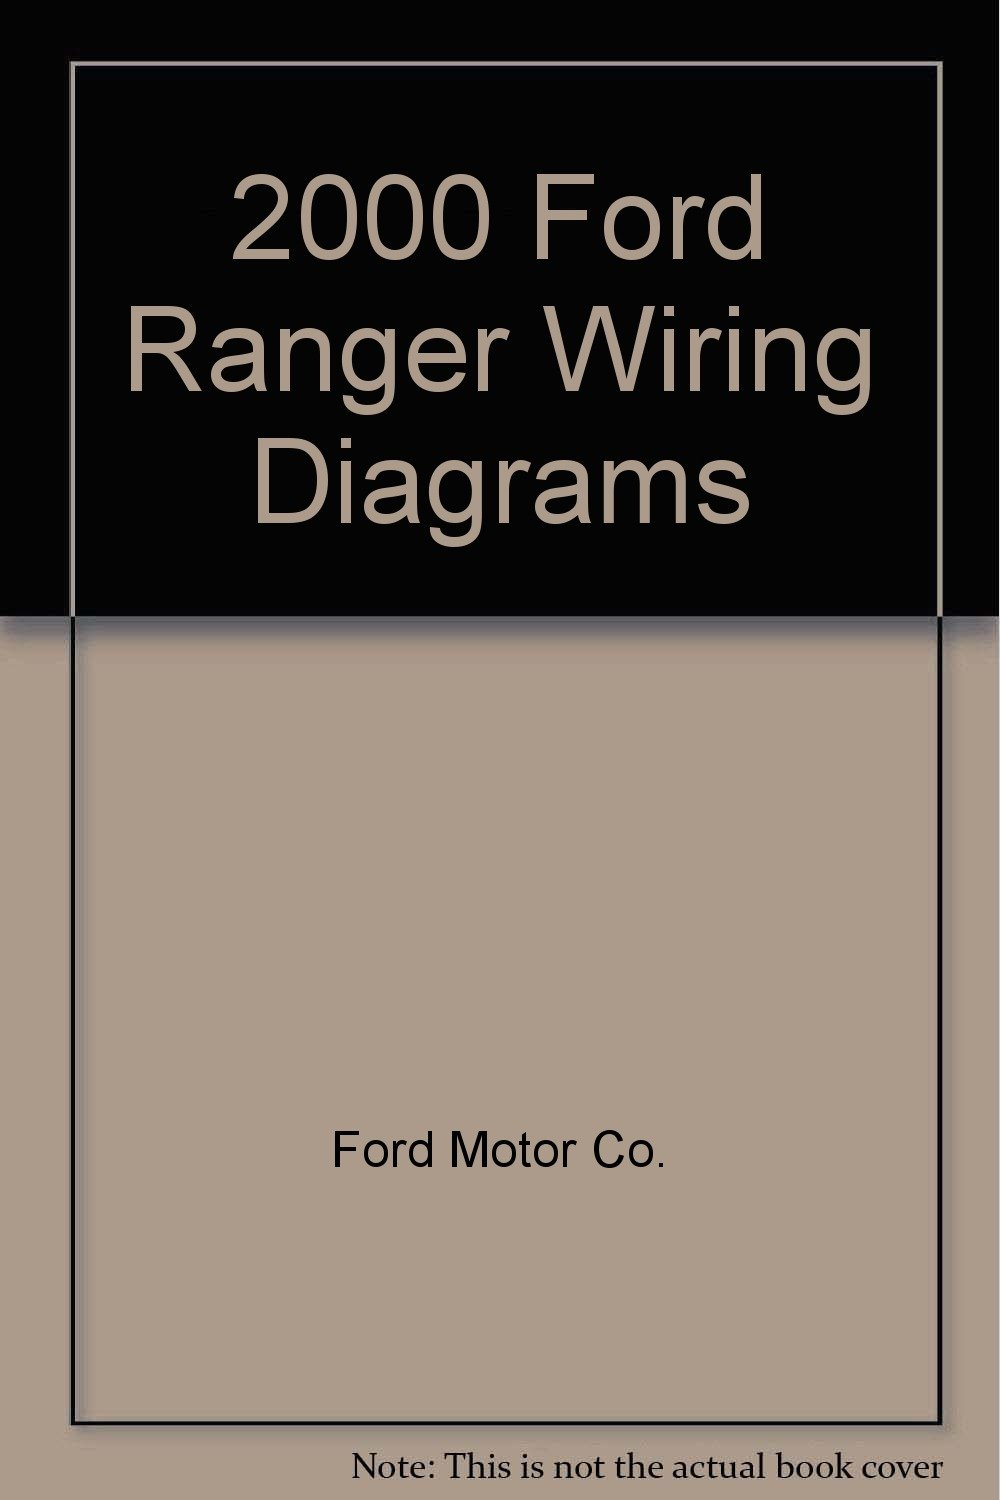 Radio Wiring Diagram Ford Ranger 1995